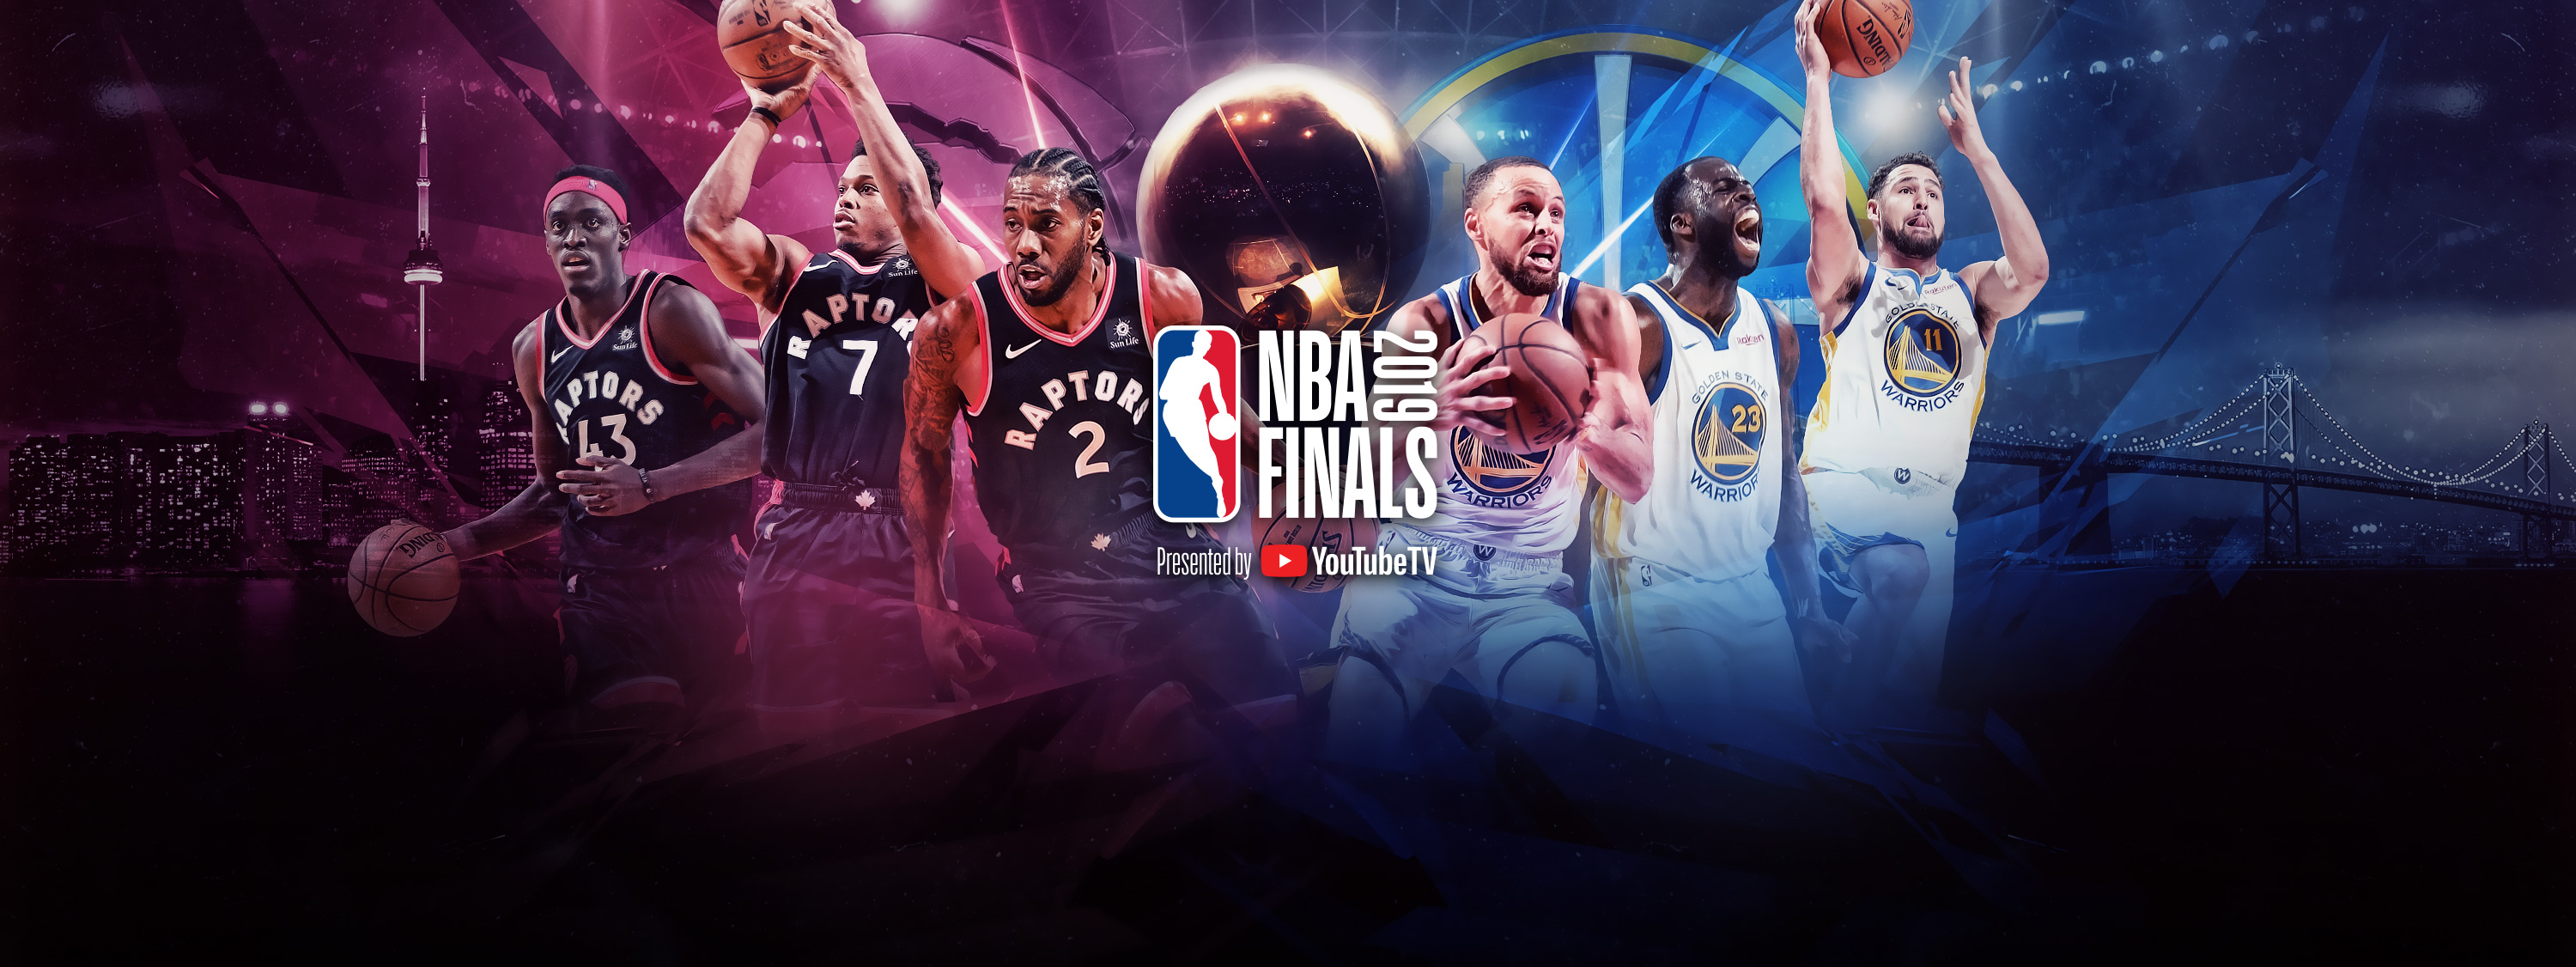 Calendario Nba 2020.2019 Nba Finals Schedule And Matchup Nba Com